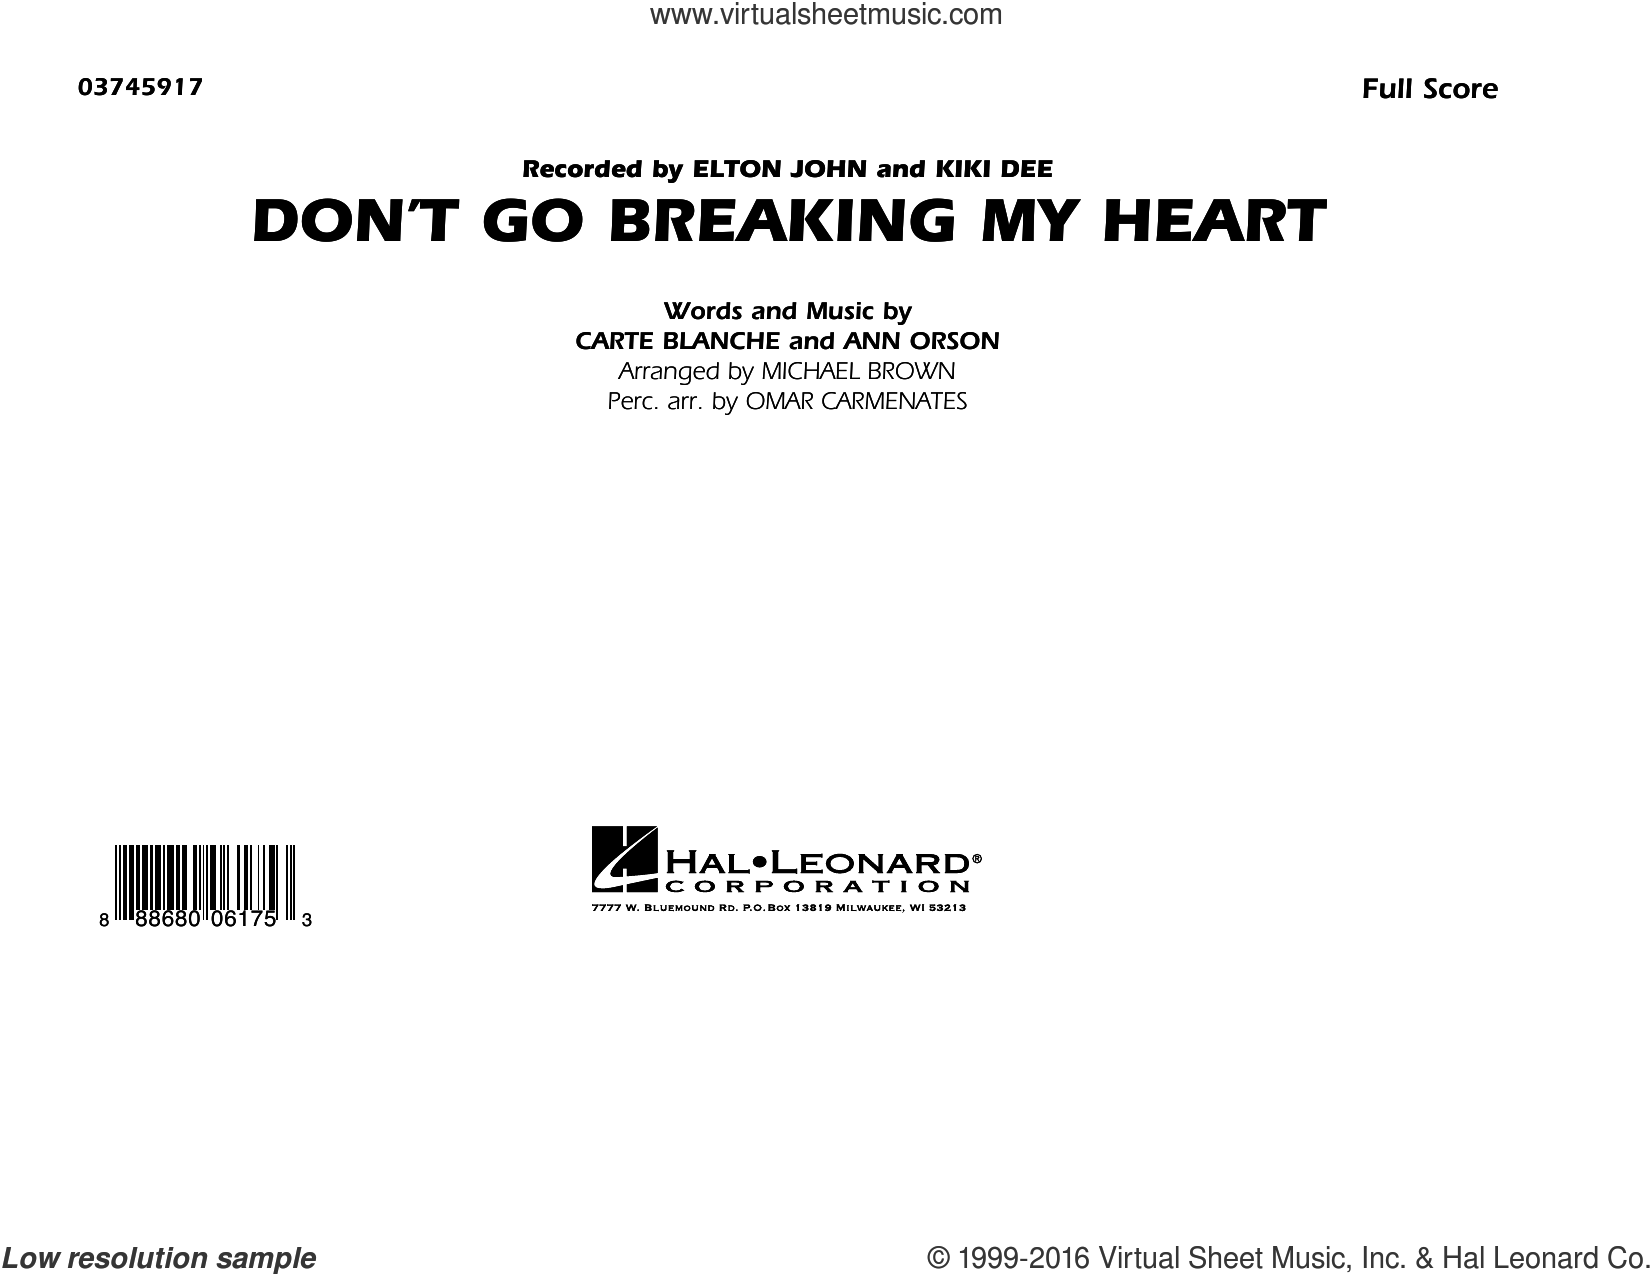 Don't Go Breaking My Heart (COMPLETE) sheet music for marching band by Carte Blanche, Ann Orson, Elton John and Michael Brown. Score Image Preview.